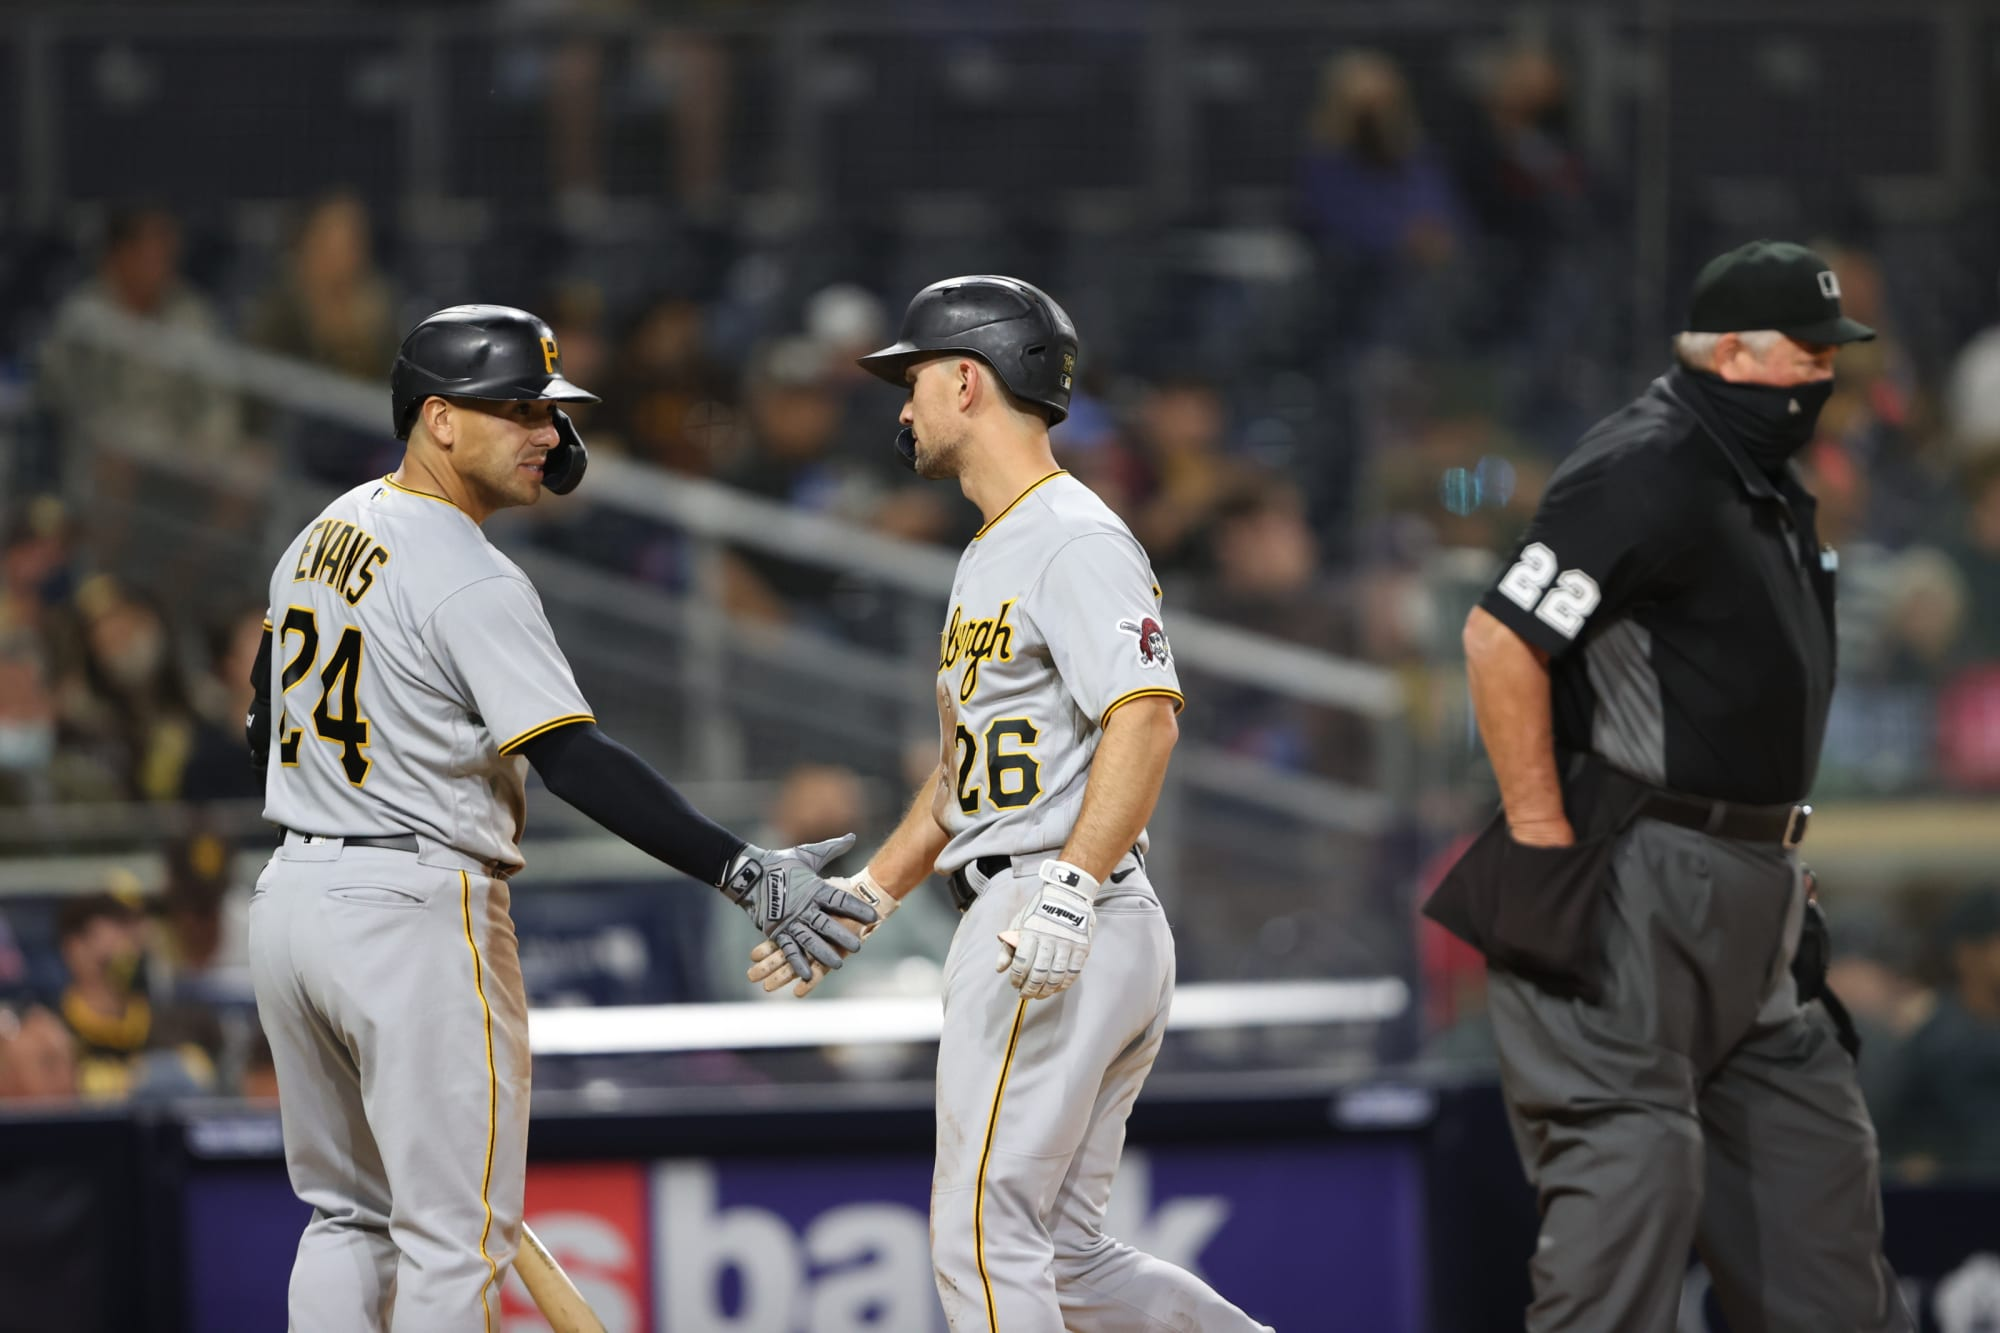 Pittsburgh Pirates: Mitch Keller Dominates Padres in 2-1 Victory